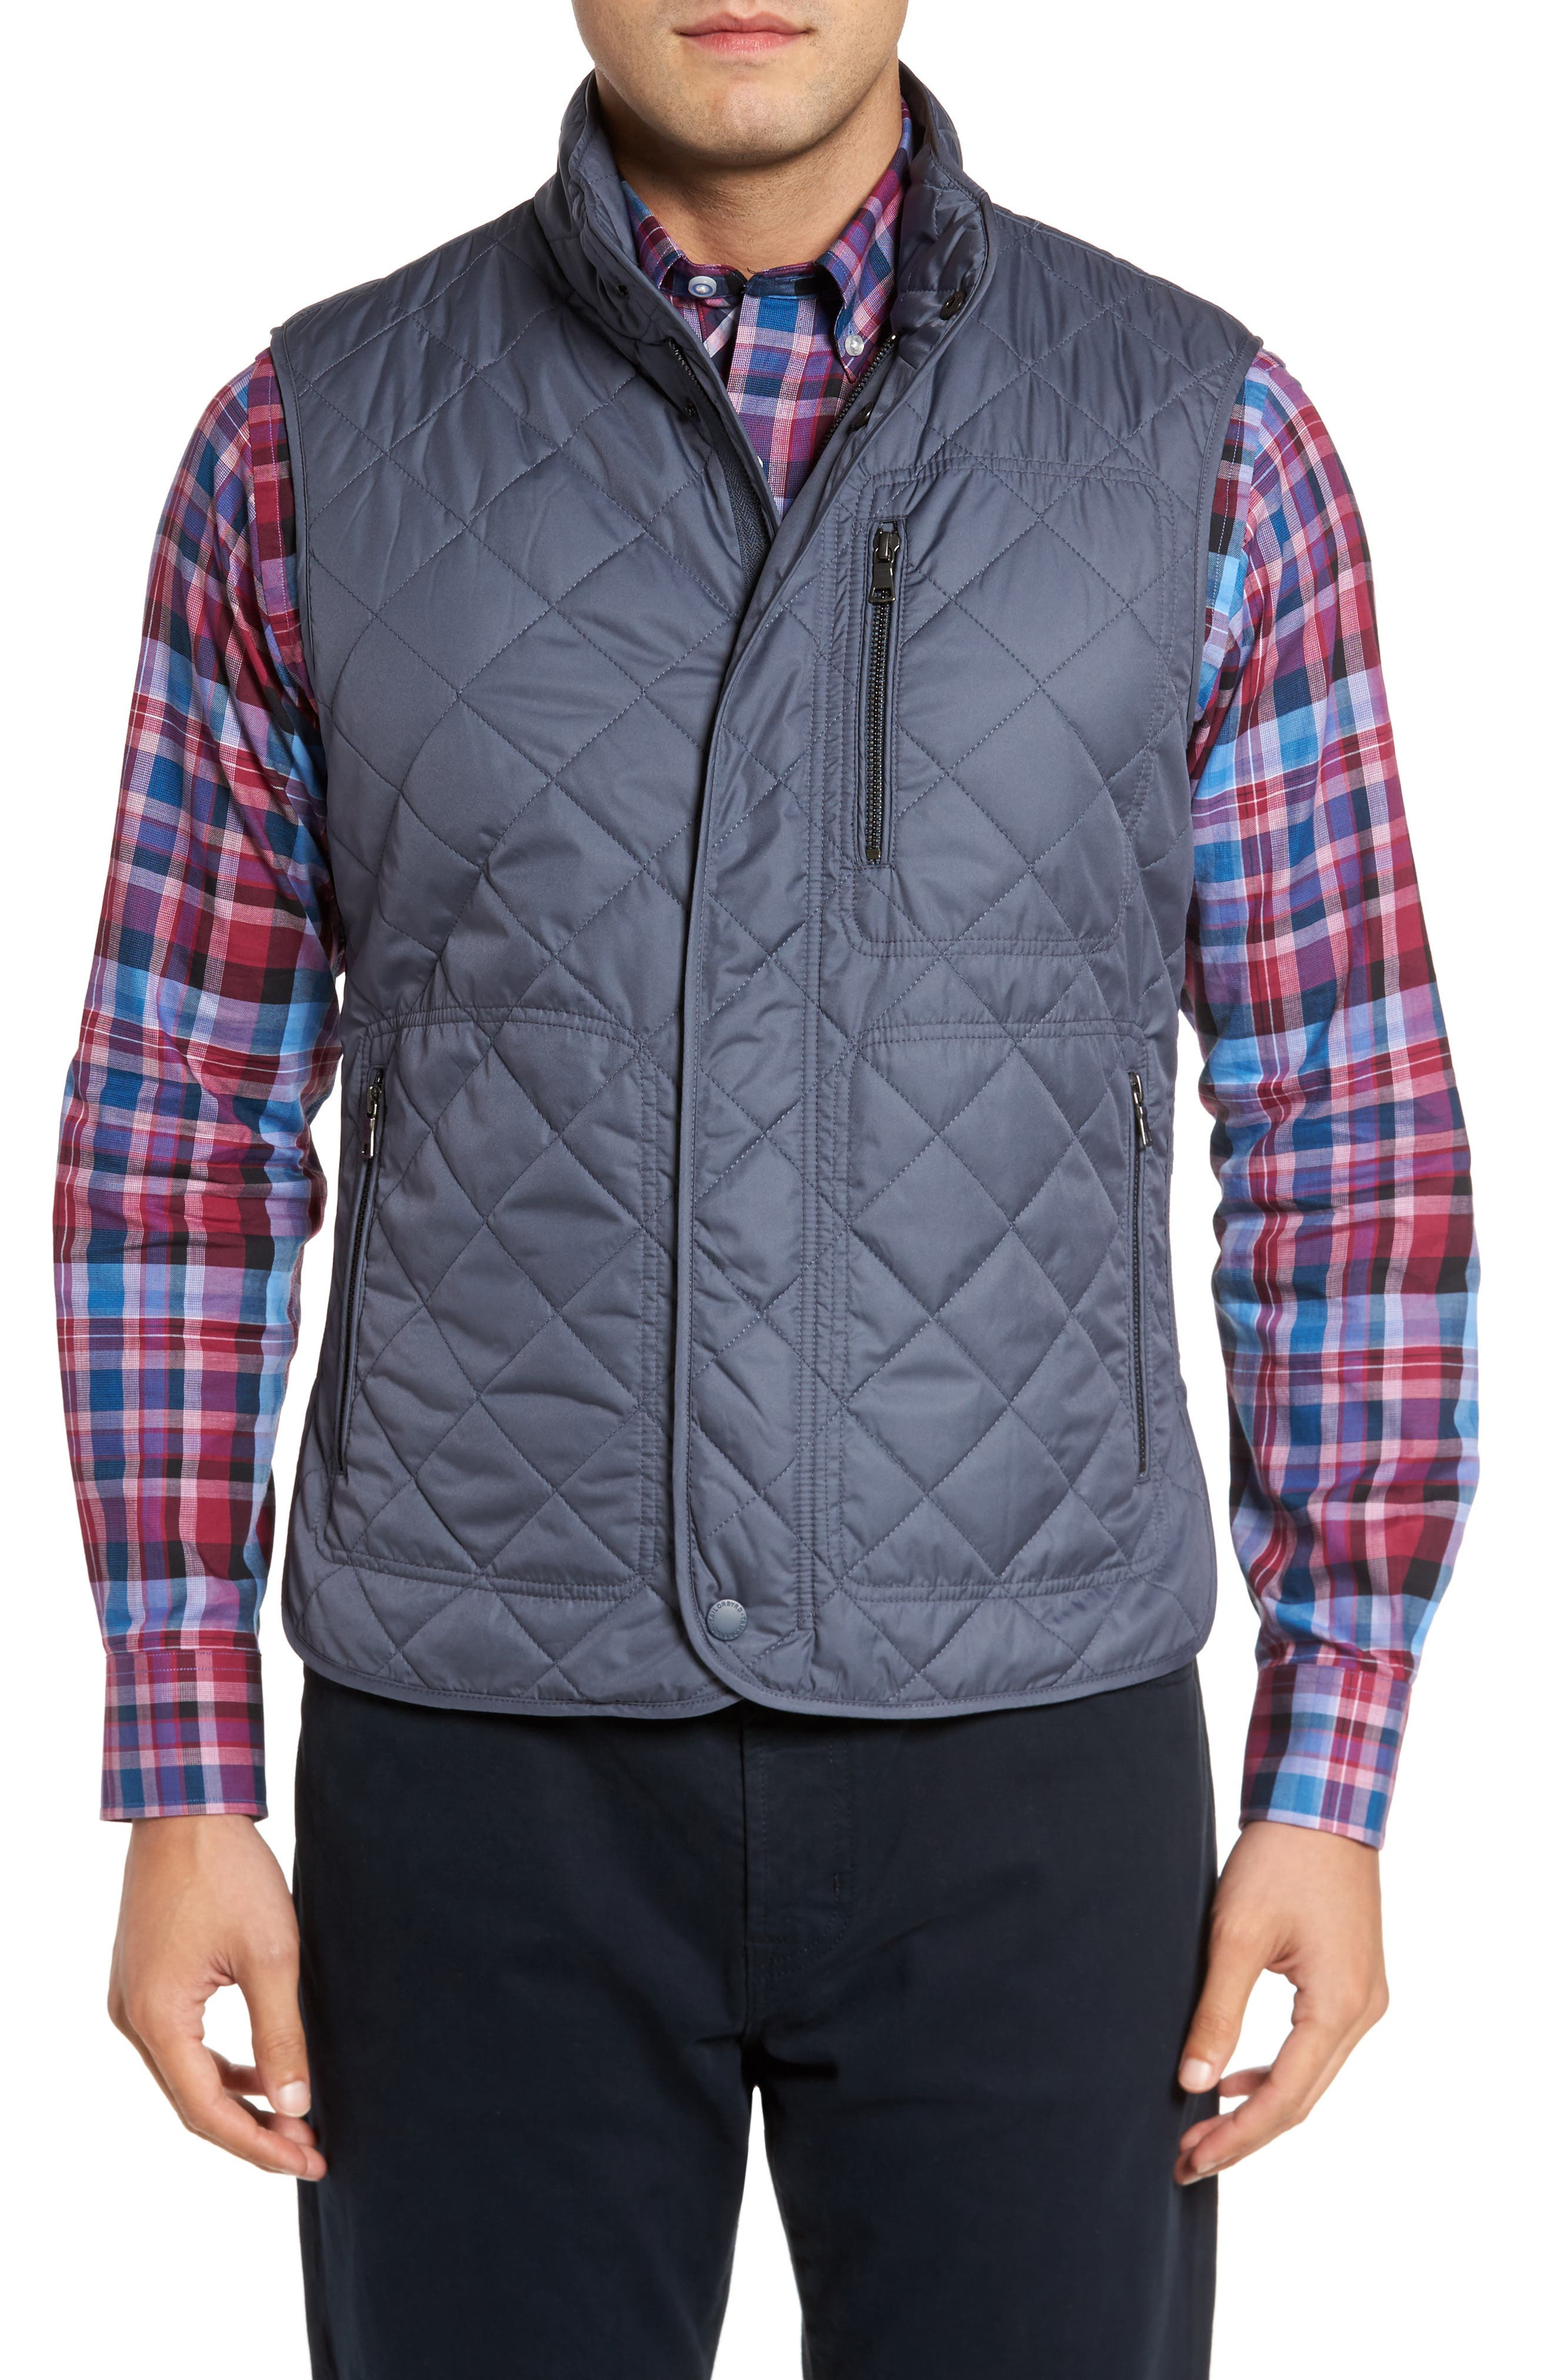 Heflin Quilted Vest,                             Main thumbnail 1, color,                             Slate